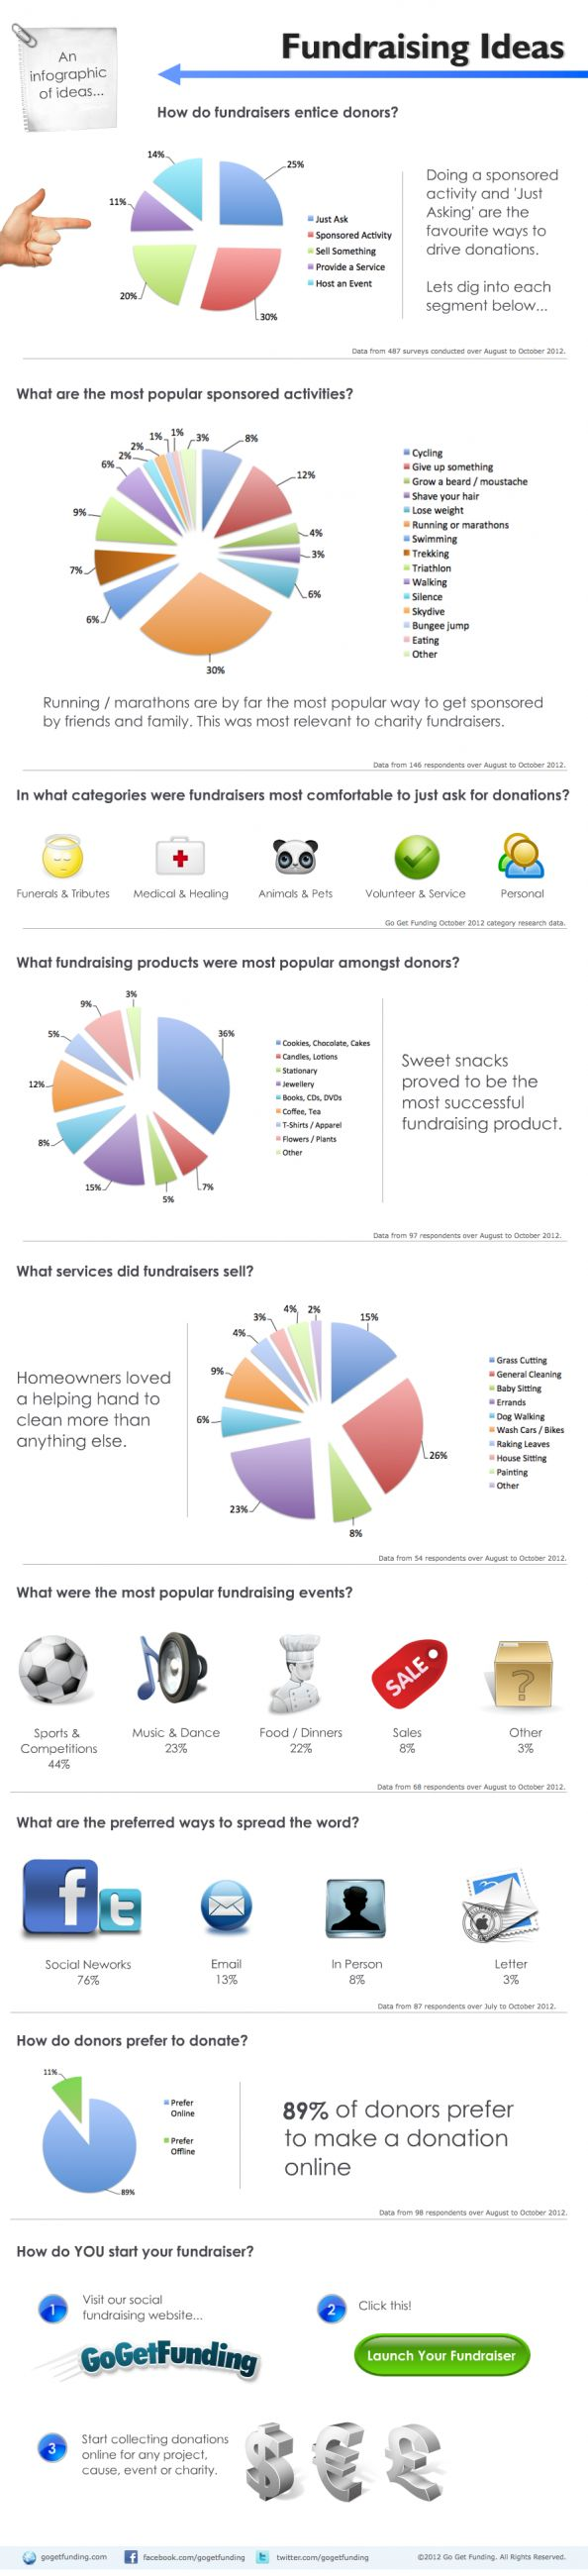 Fundraising Ideas - Infographic breaks down popularity of various events and other fundraising options